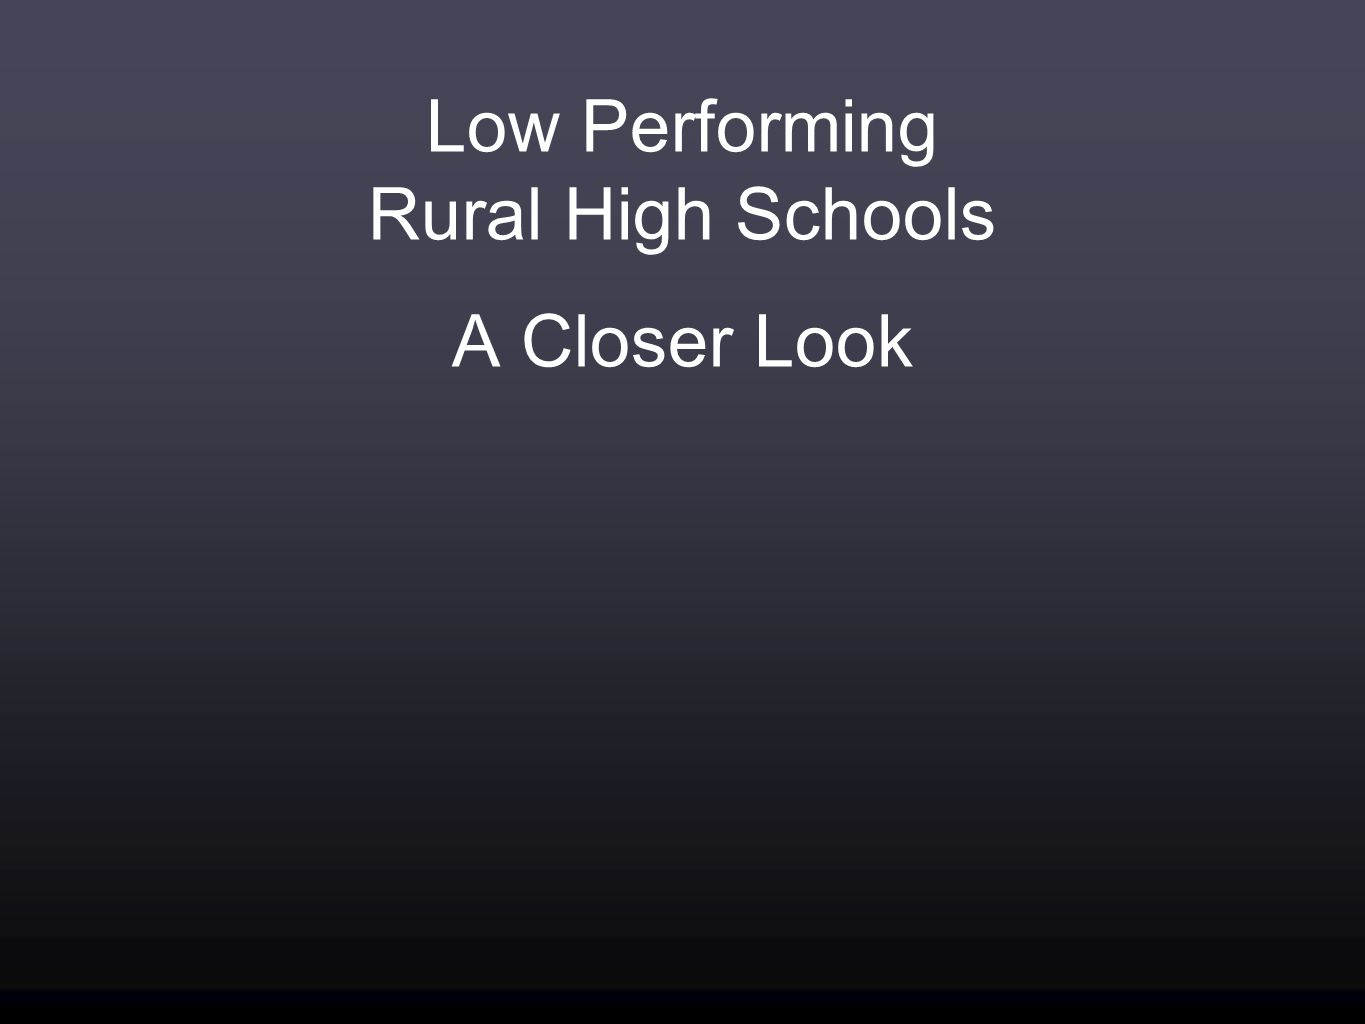 Low Performing Rural High Schools A Closer Look